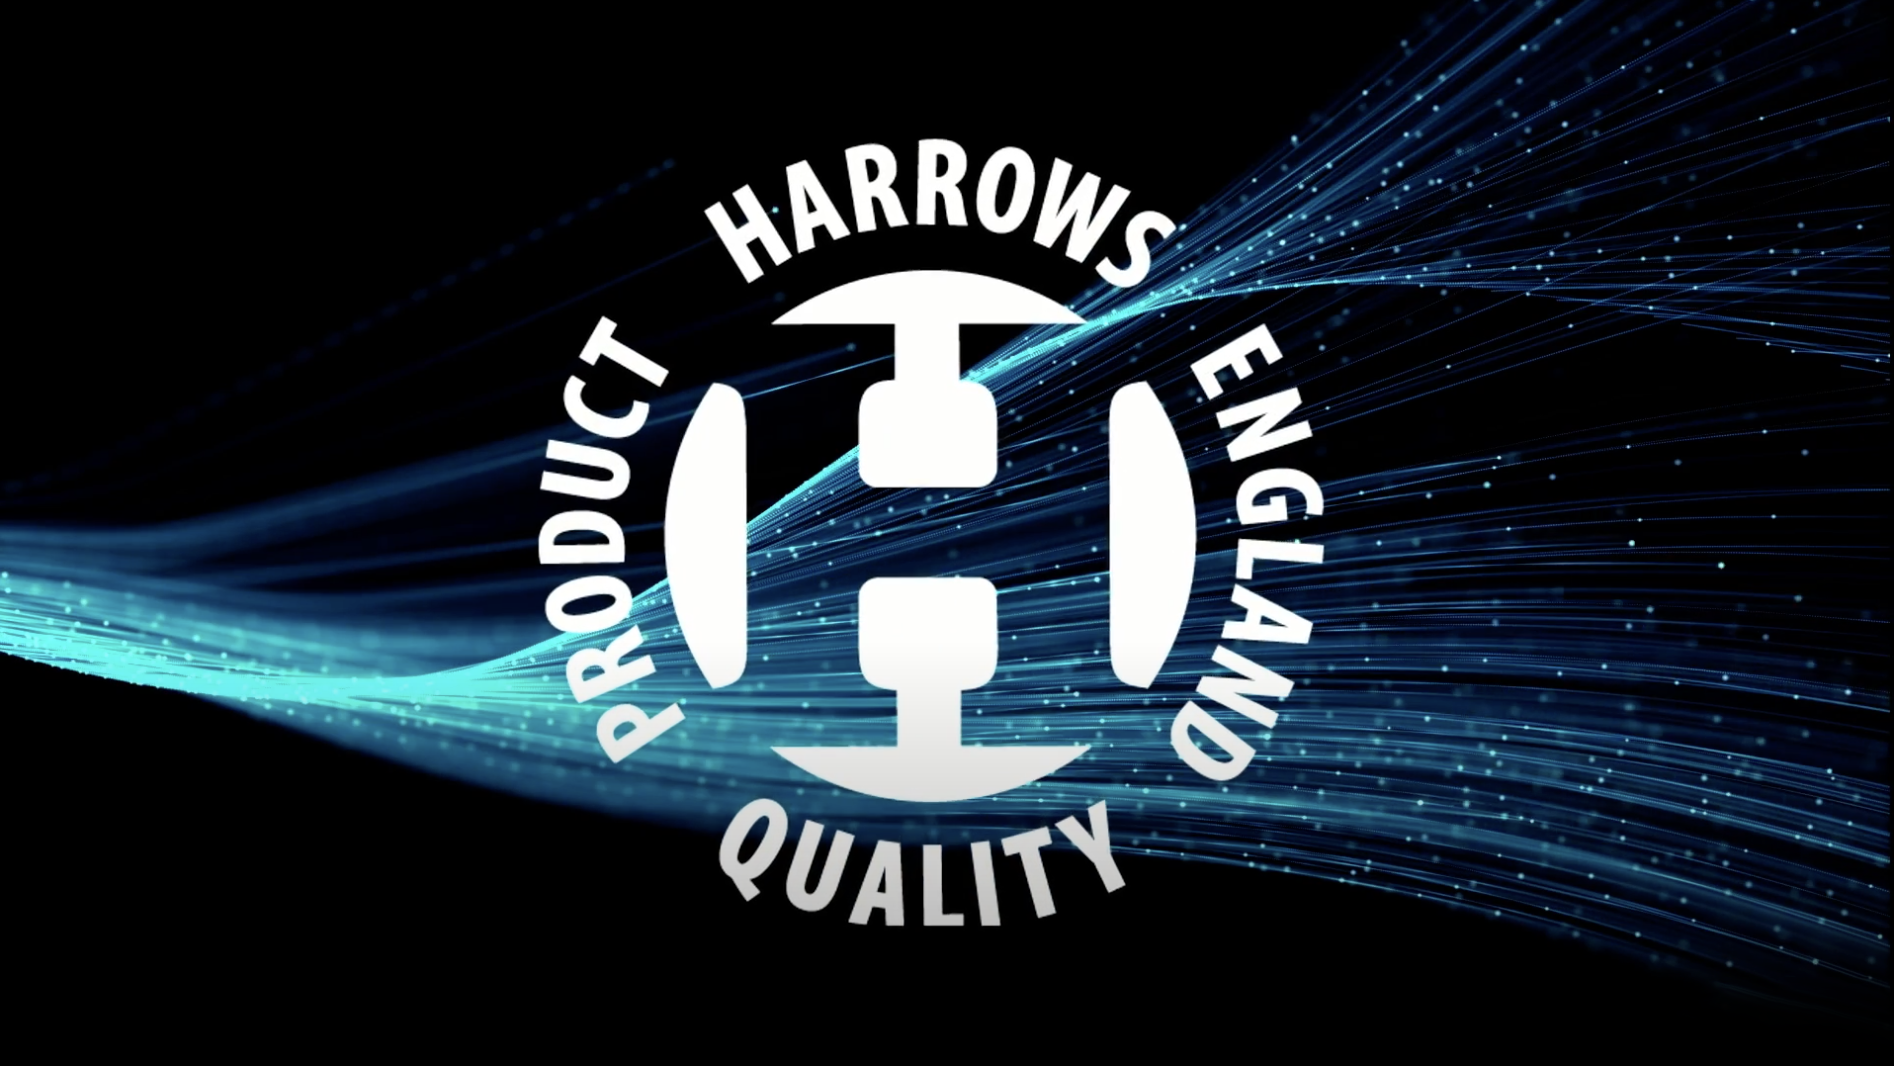 Harrows Announce Takeover.